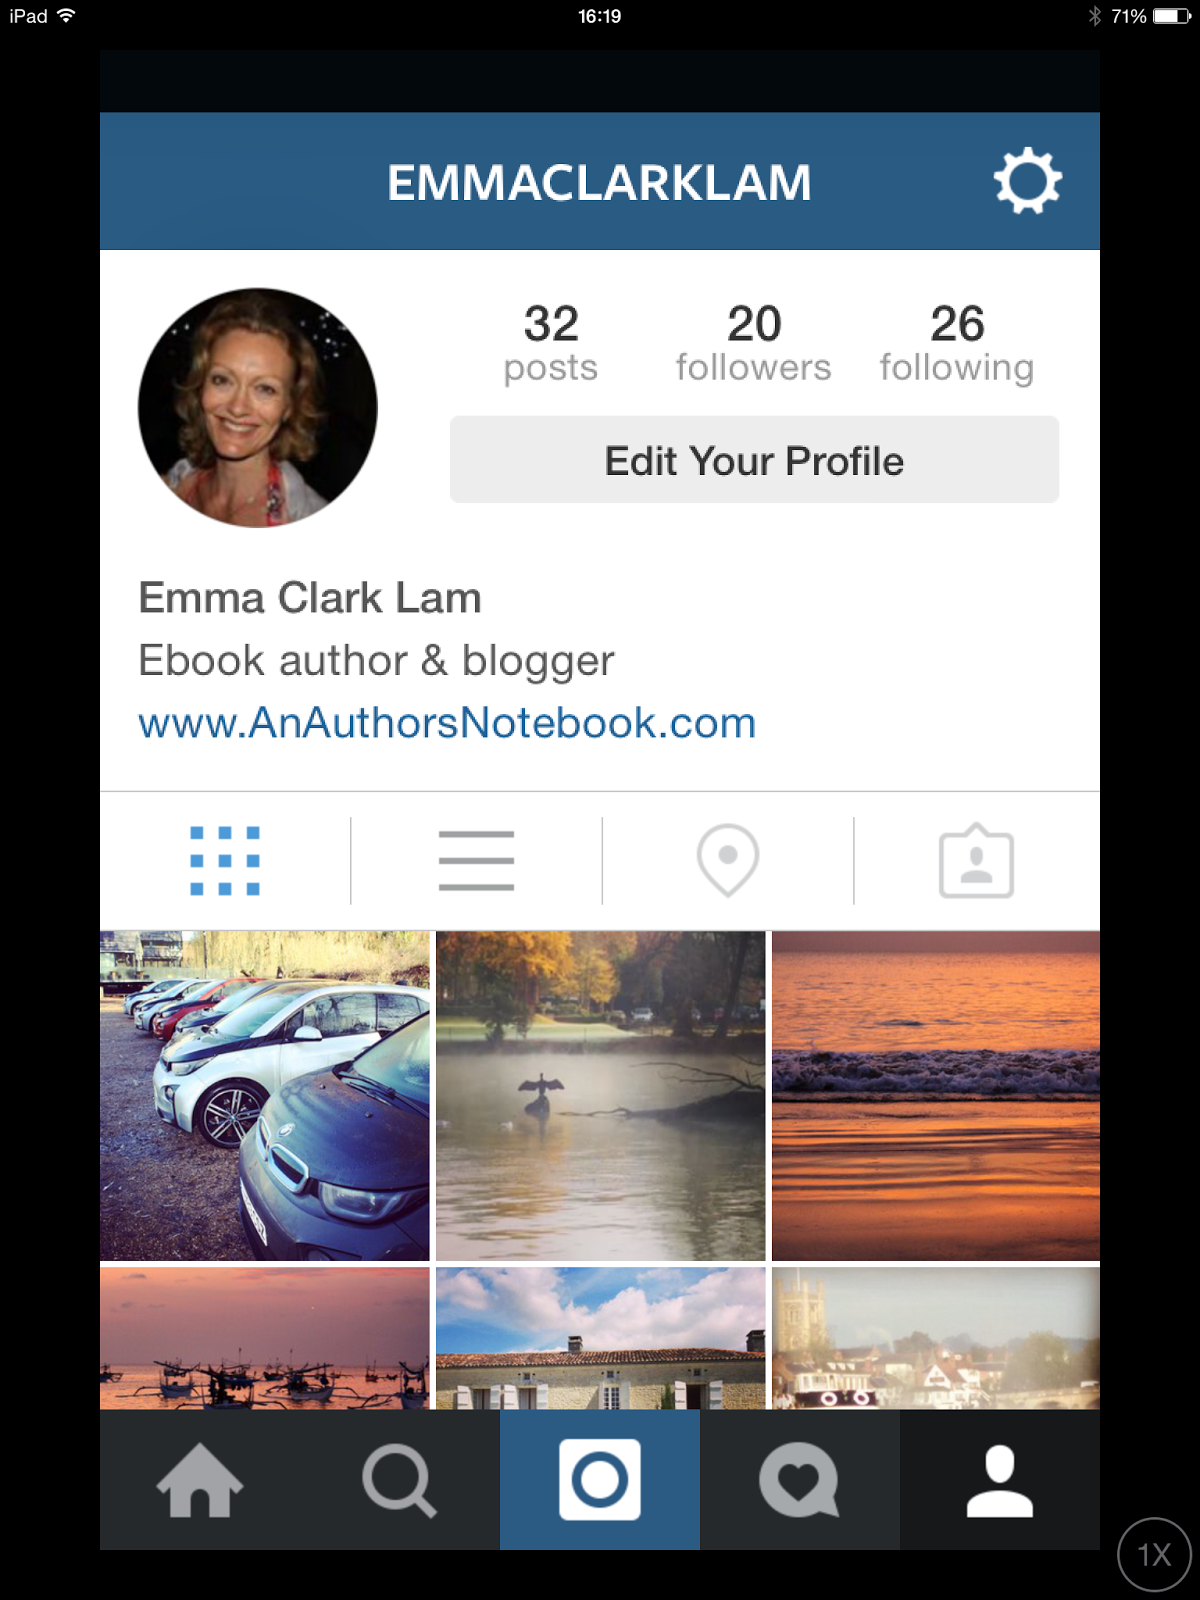 Photo grab of Instagram profile